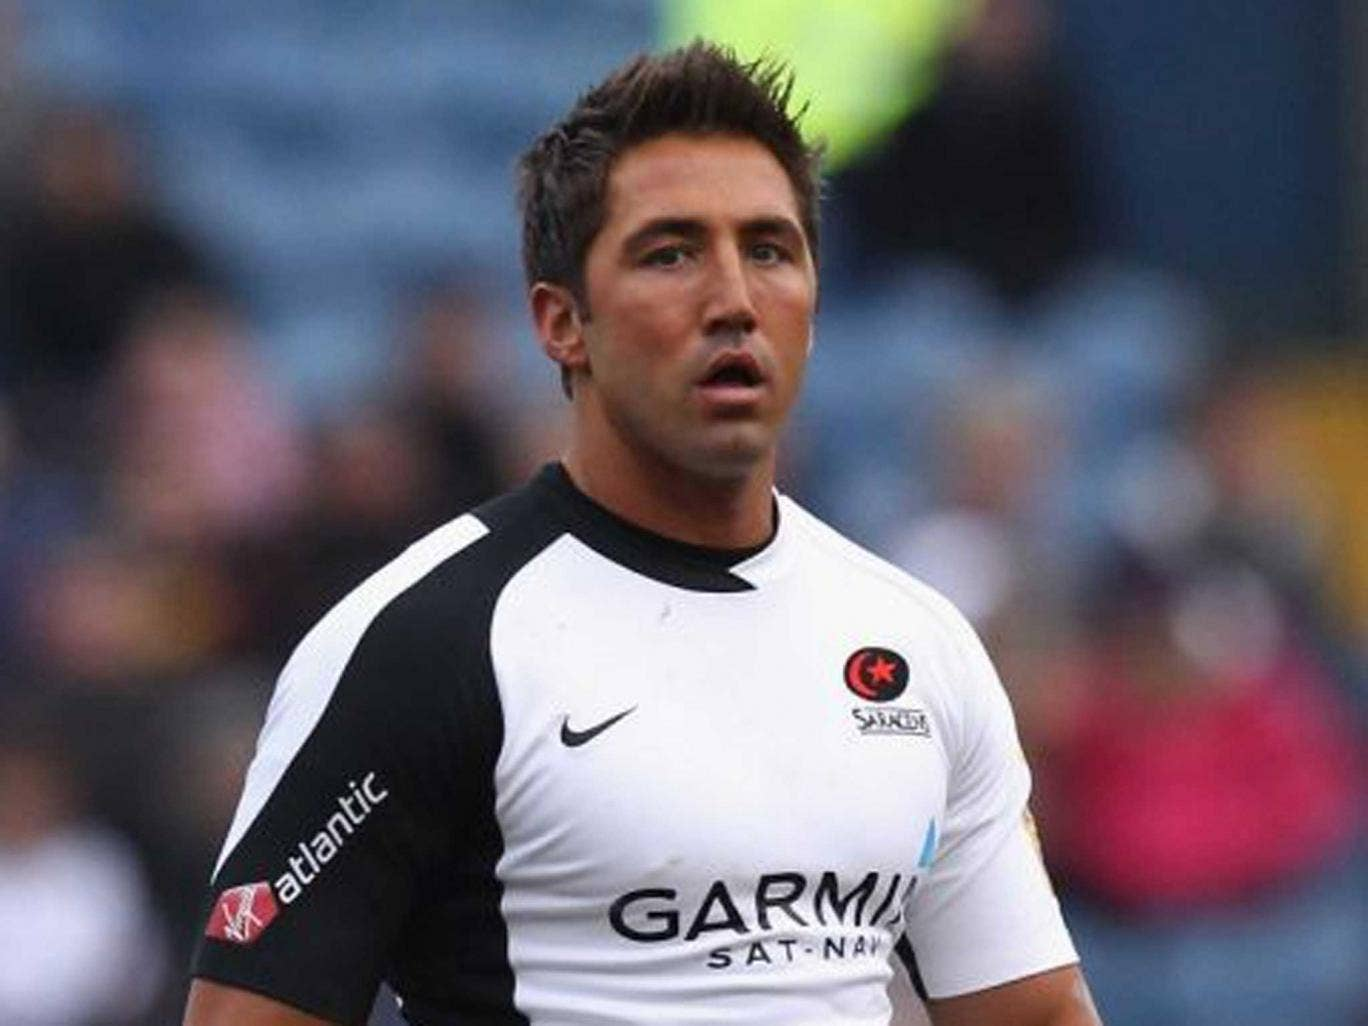 Gavin Henson will play in midfield